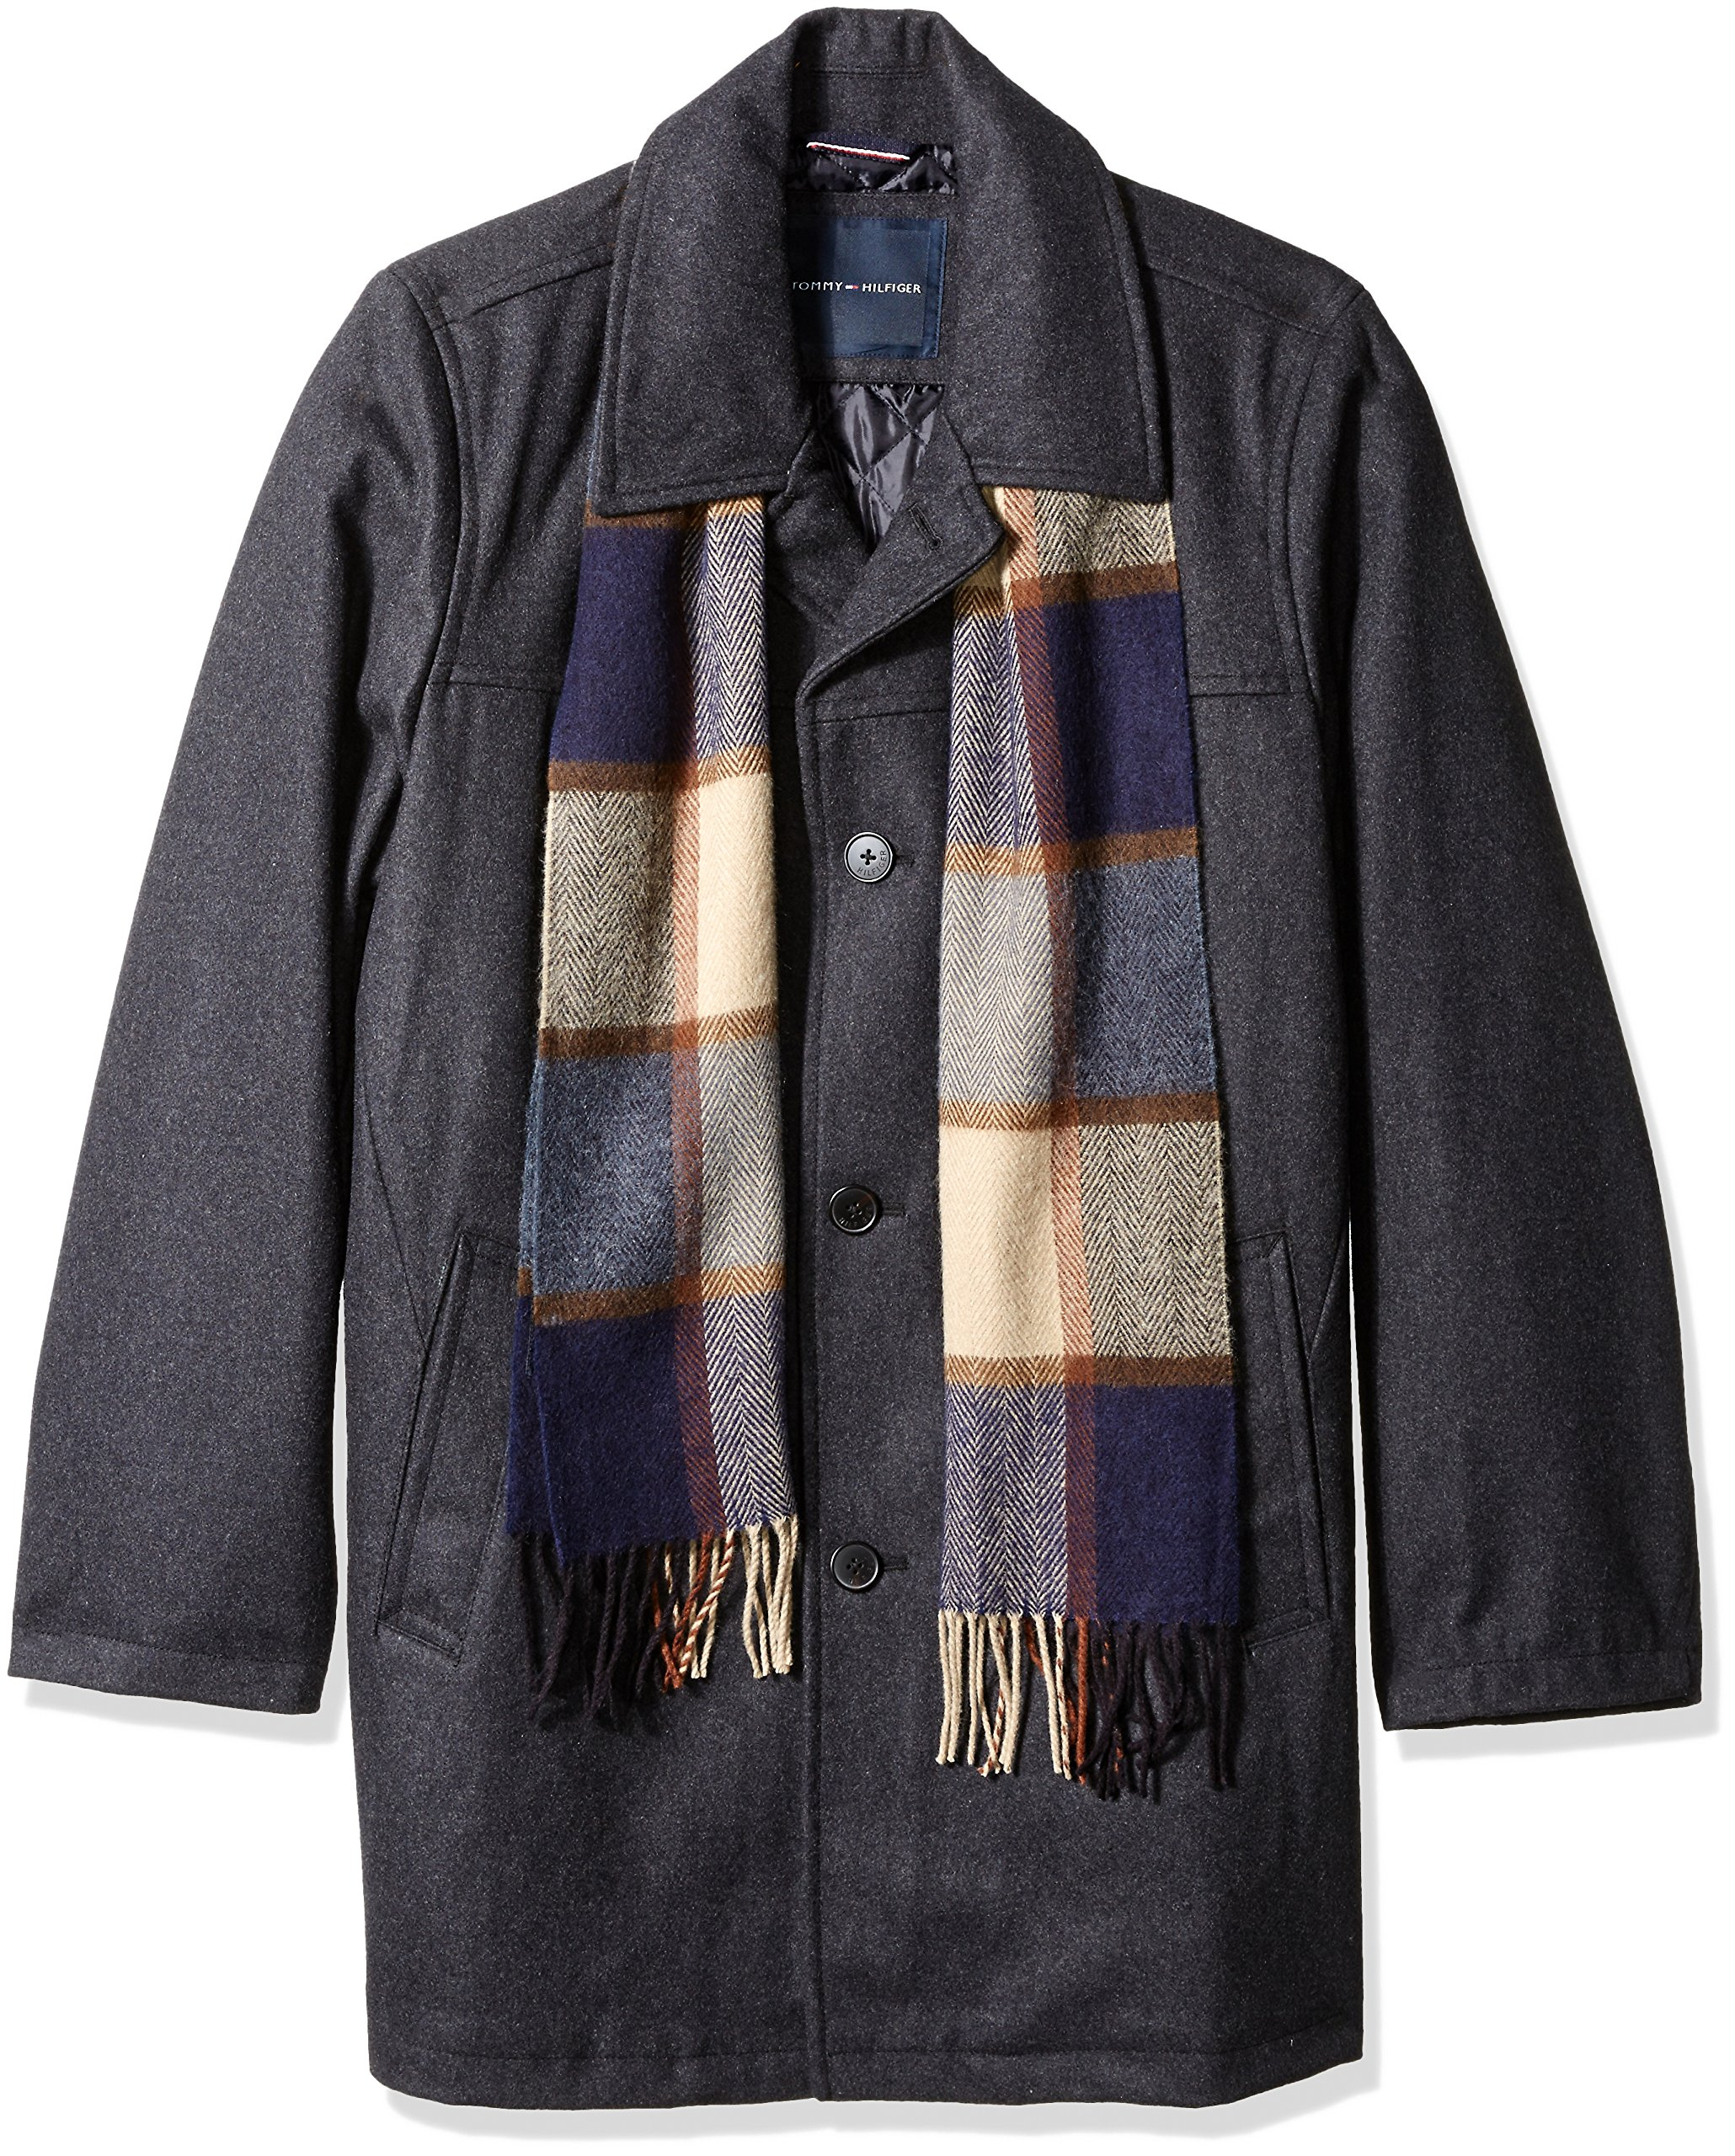 Tommy Hilfiger Men's Size Wool Melton Walking Coat with Detachable Scarf, Charcoal, Long/Tall